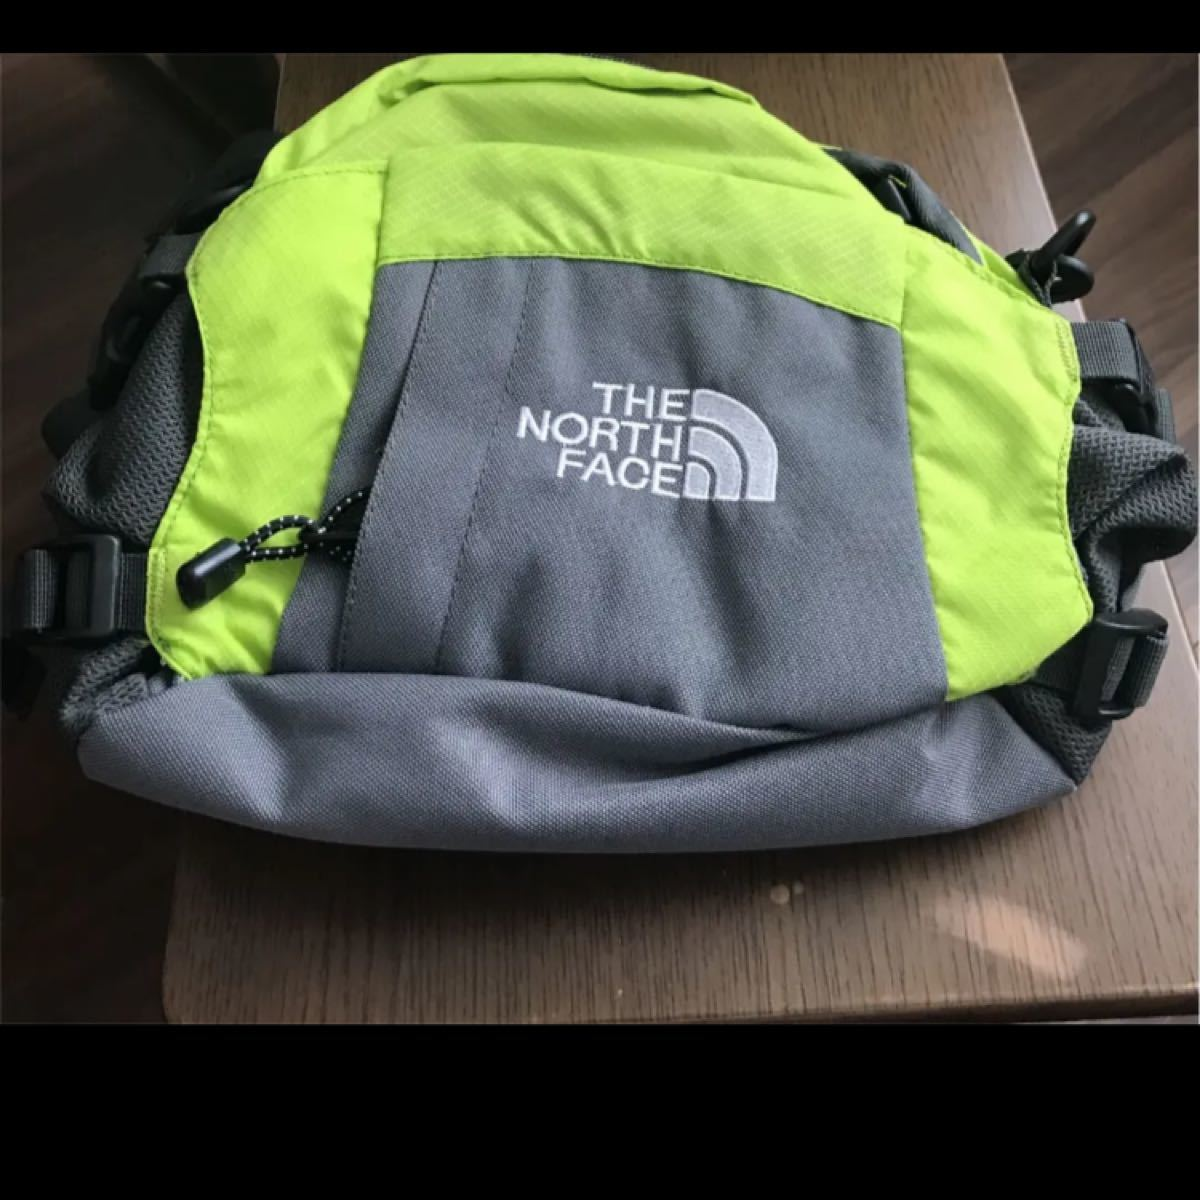 THE NORTH FACE ウエストバッグ